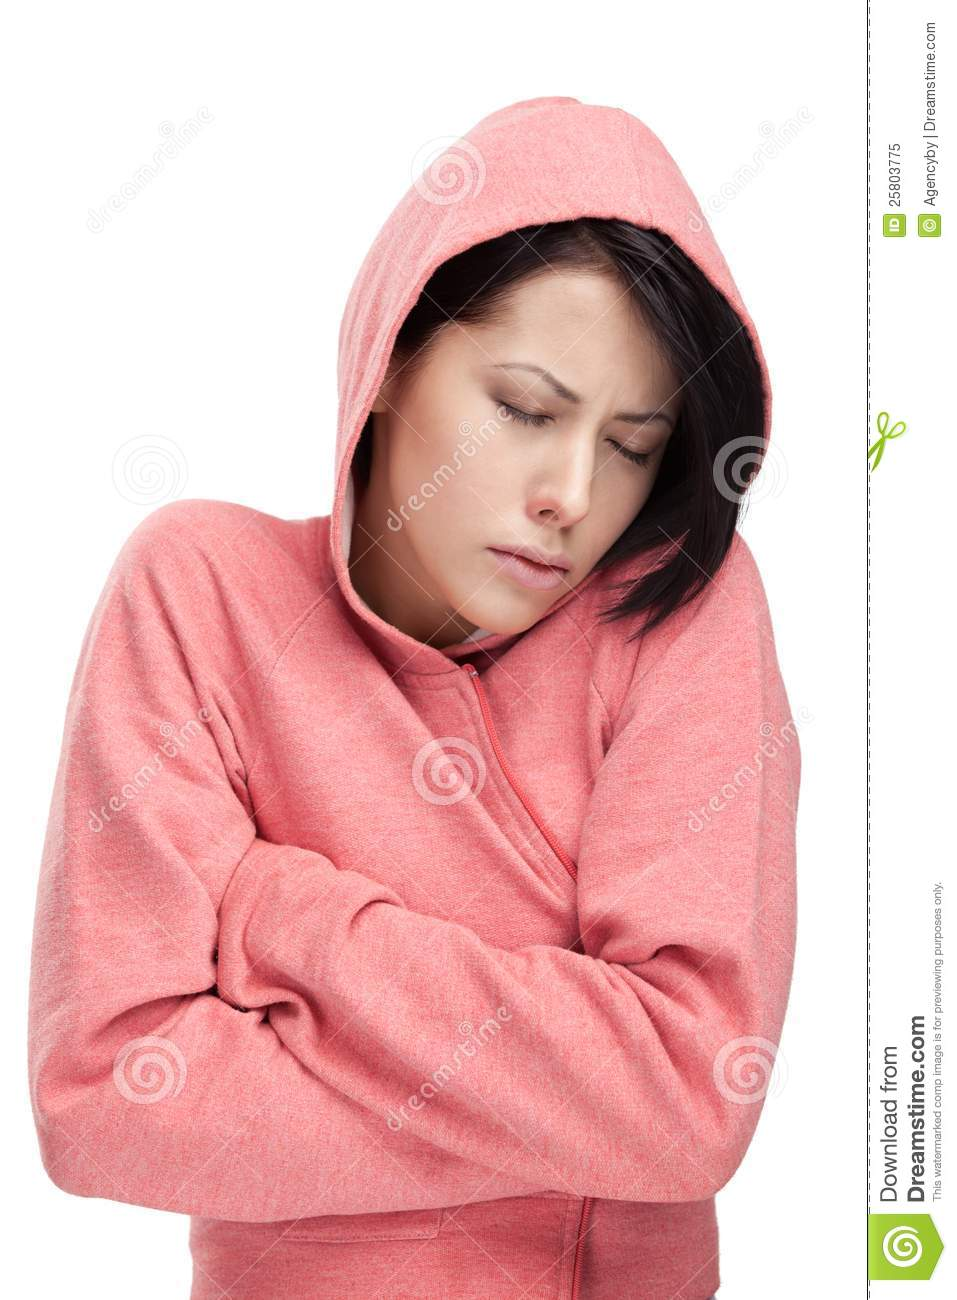 A cold young woman